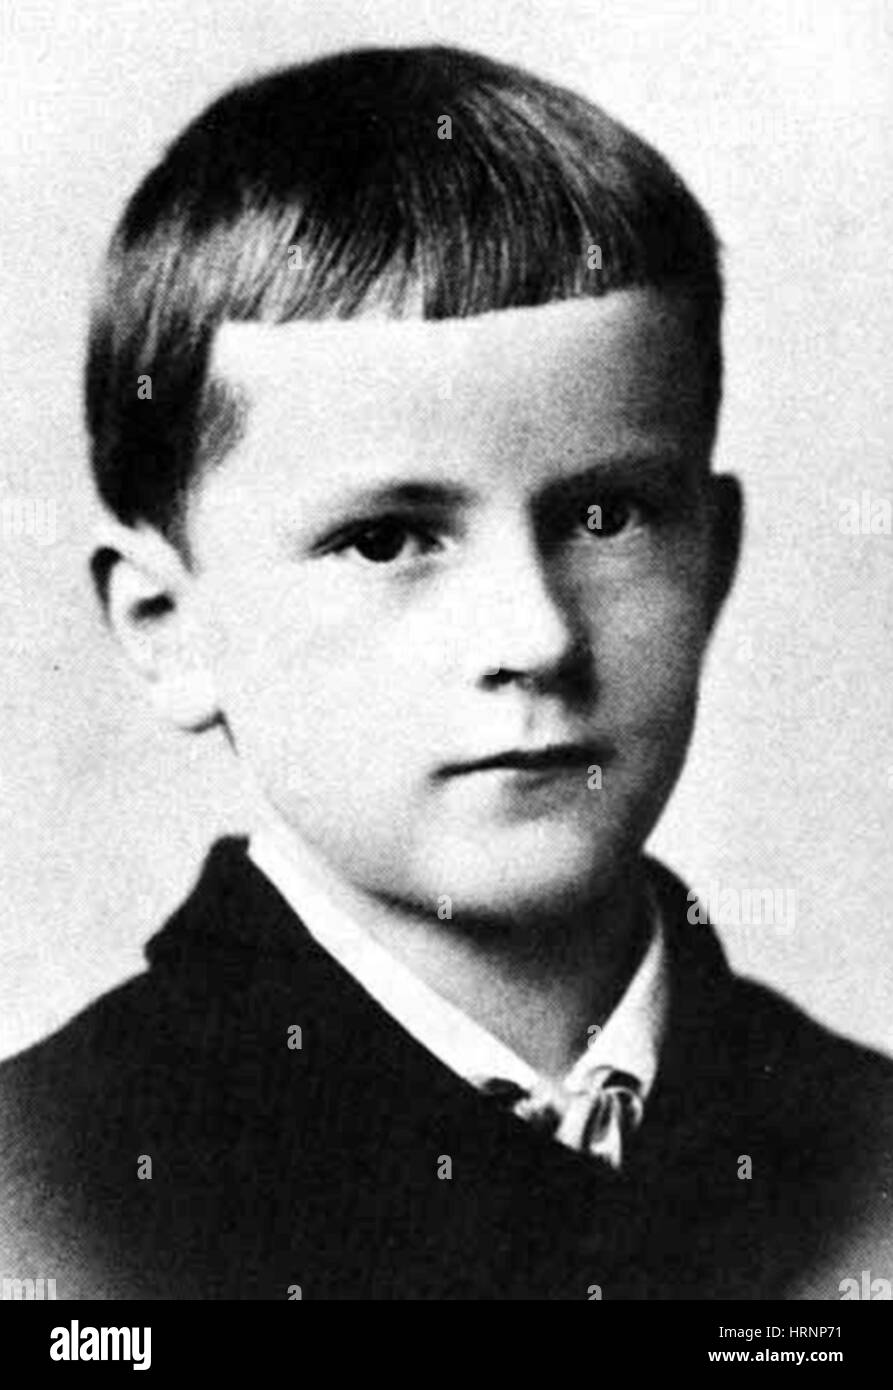 Young Carl Jung, 1870s - Stock Image